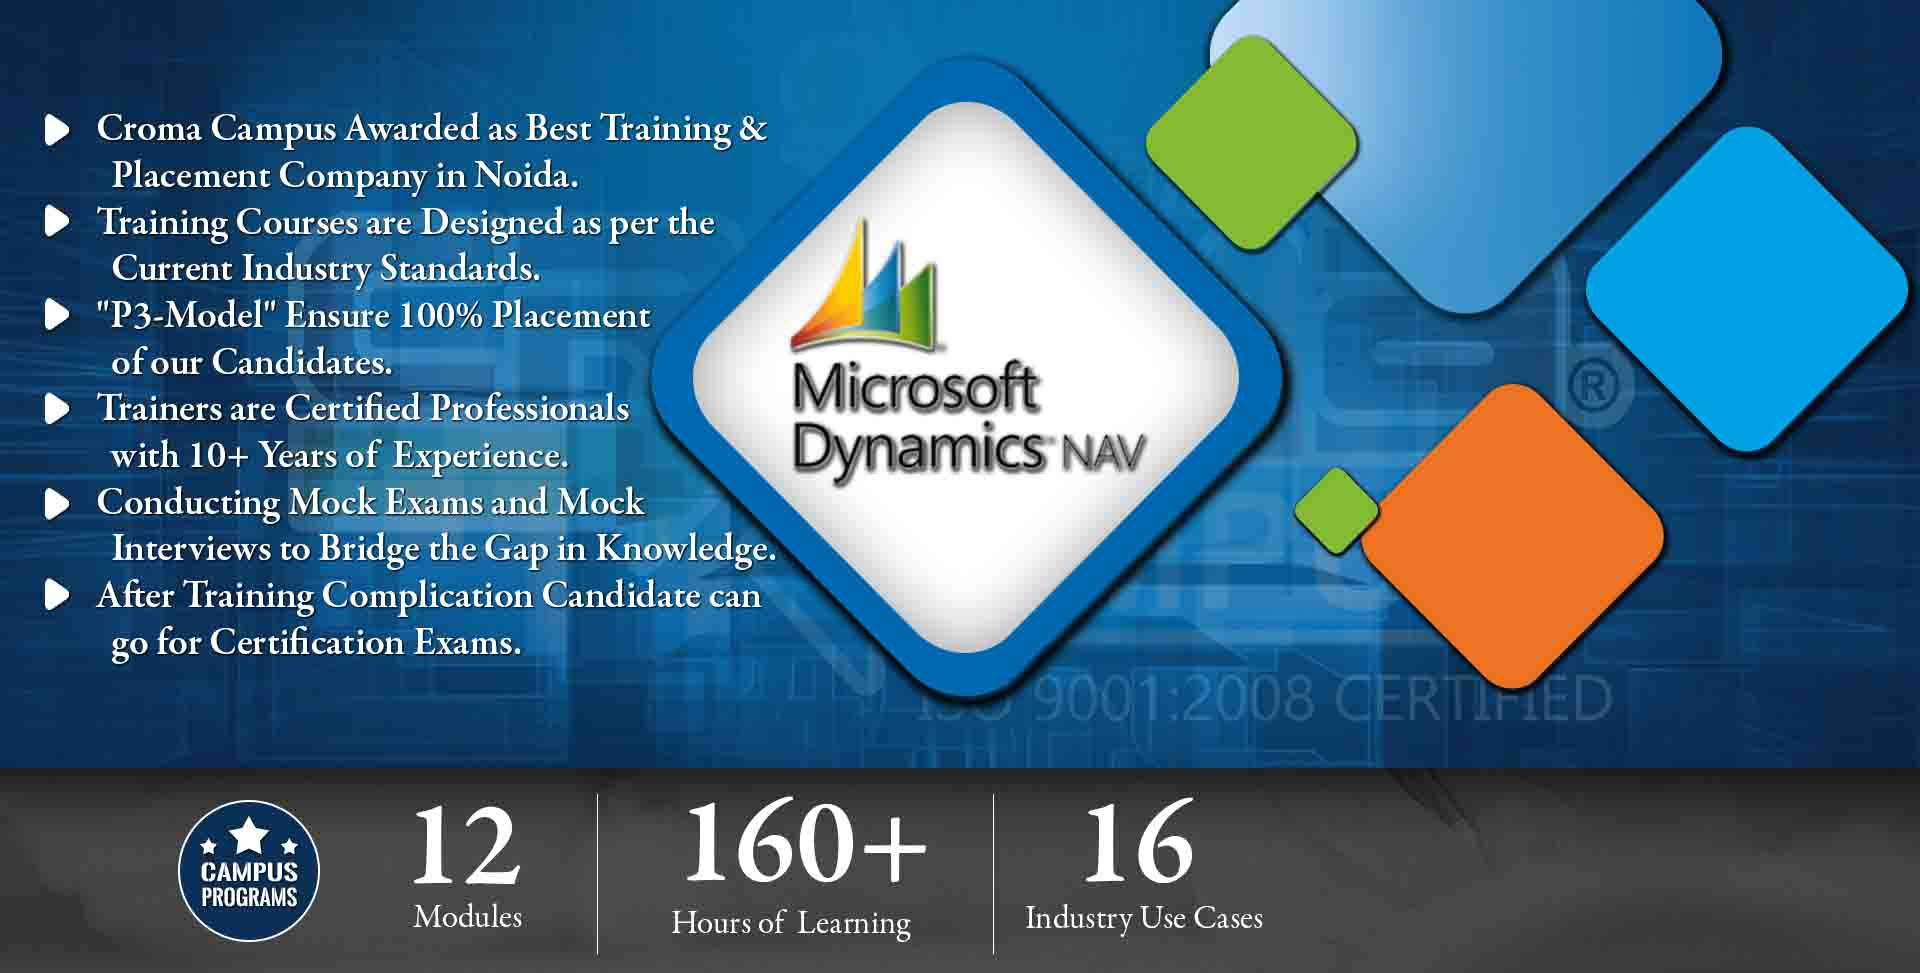 Microsoft Dynamics NAV Training in Gurgaon- Croma Campus